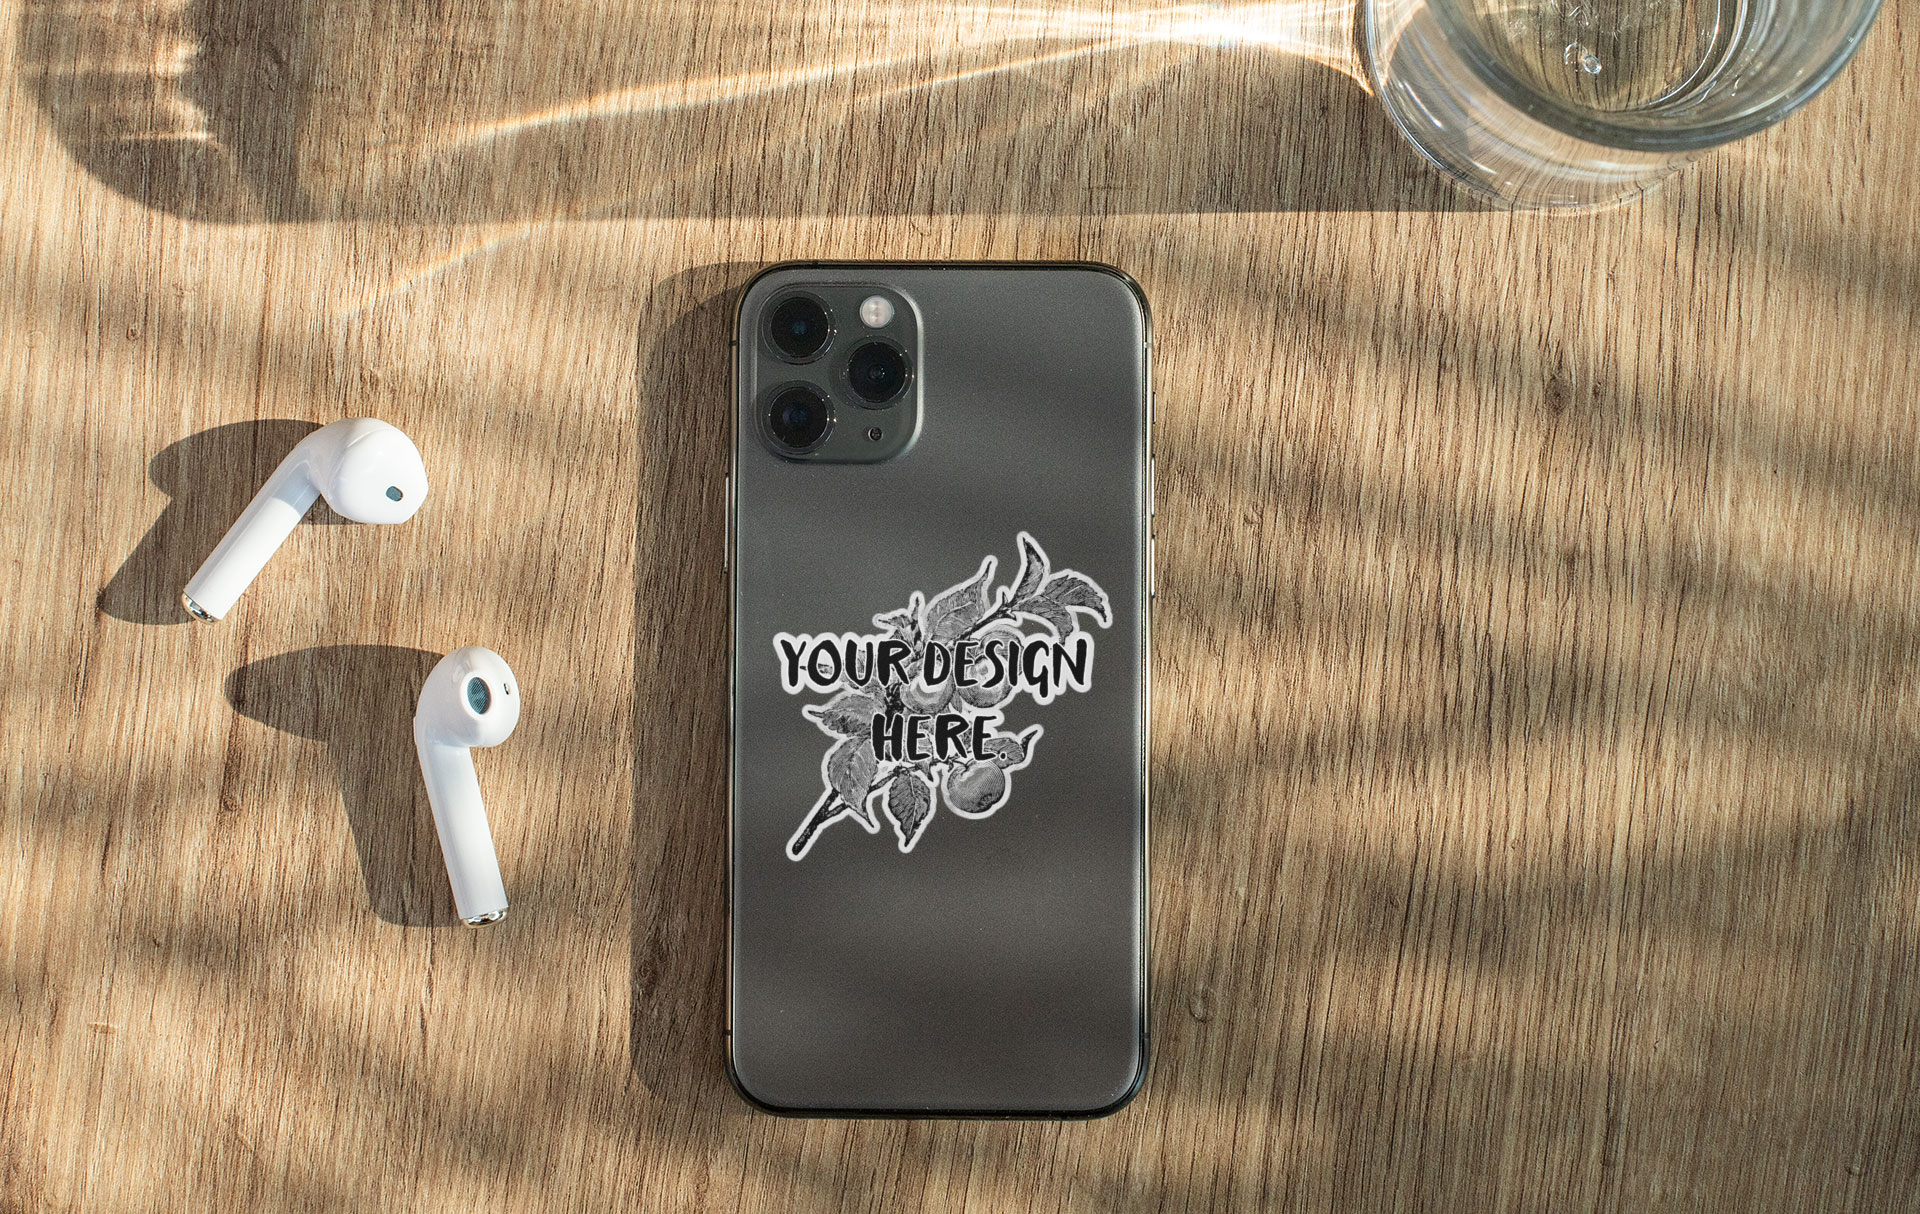 Sticker Mockup Featuring a Phone and Headphones